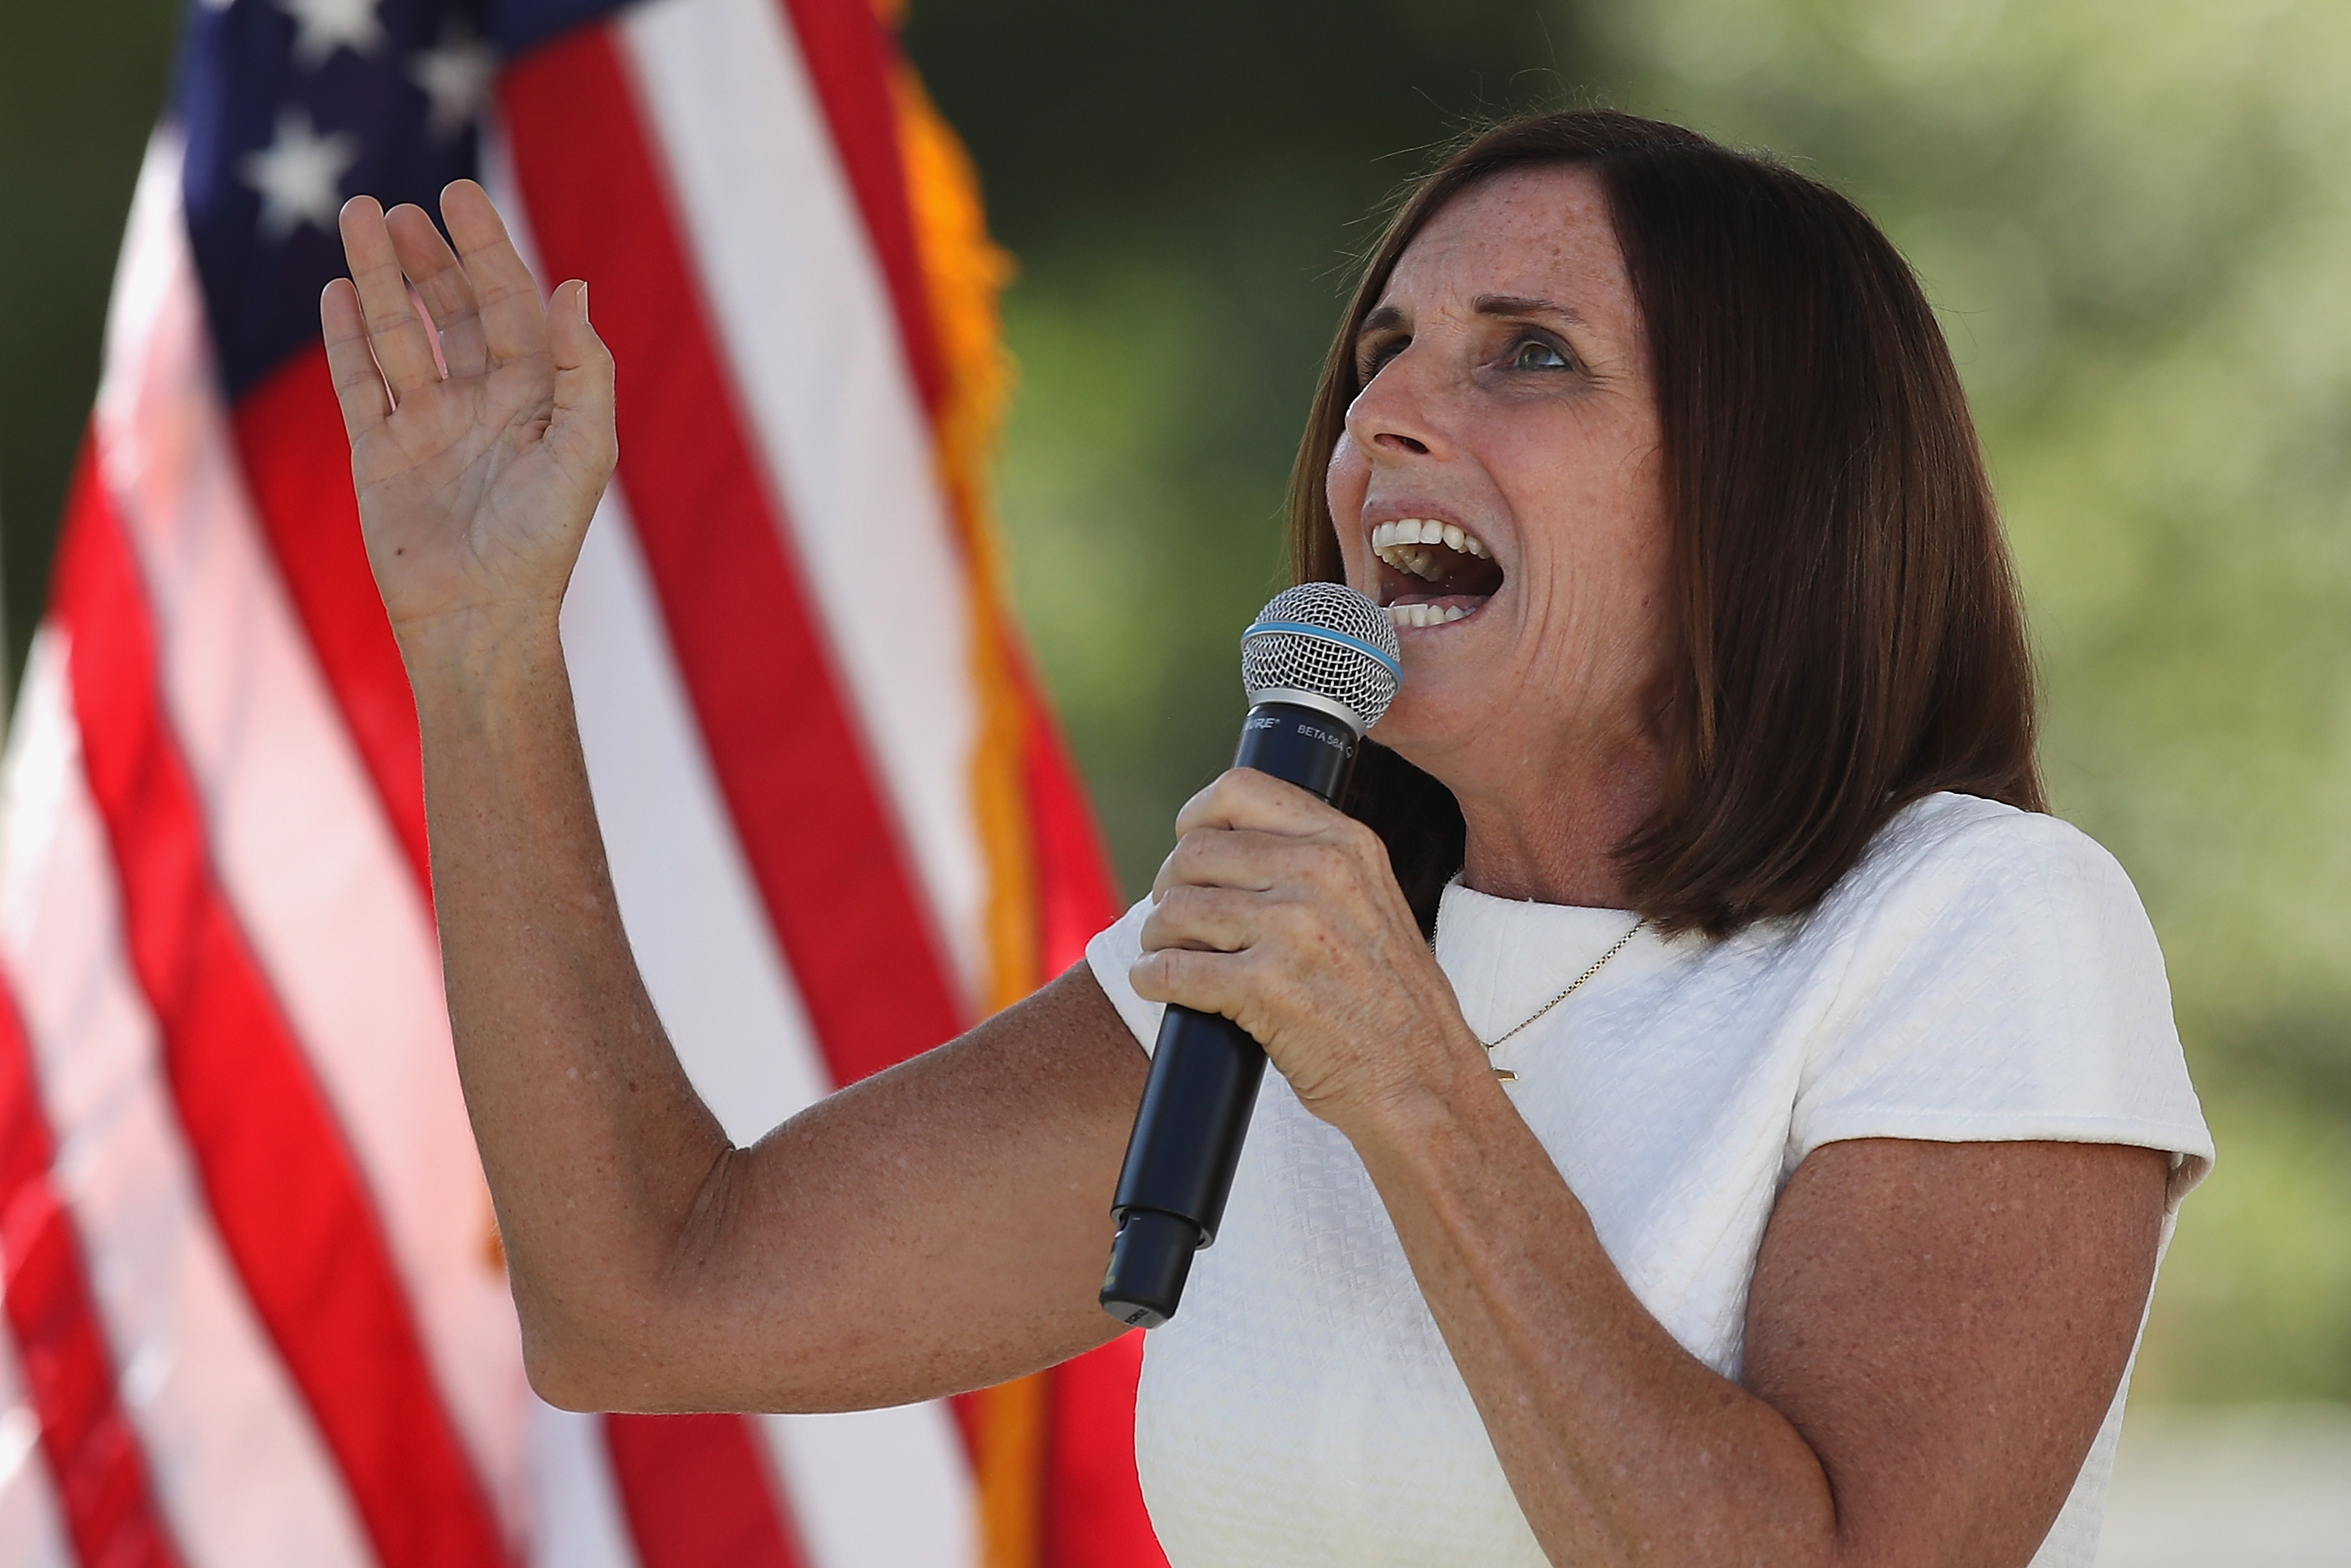 GOP Senator McSally uses taxpayer money for robocall as she trails behind Dem challenger in polls